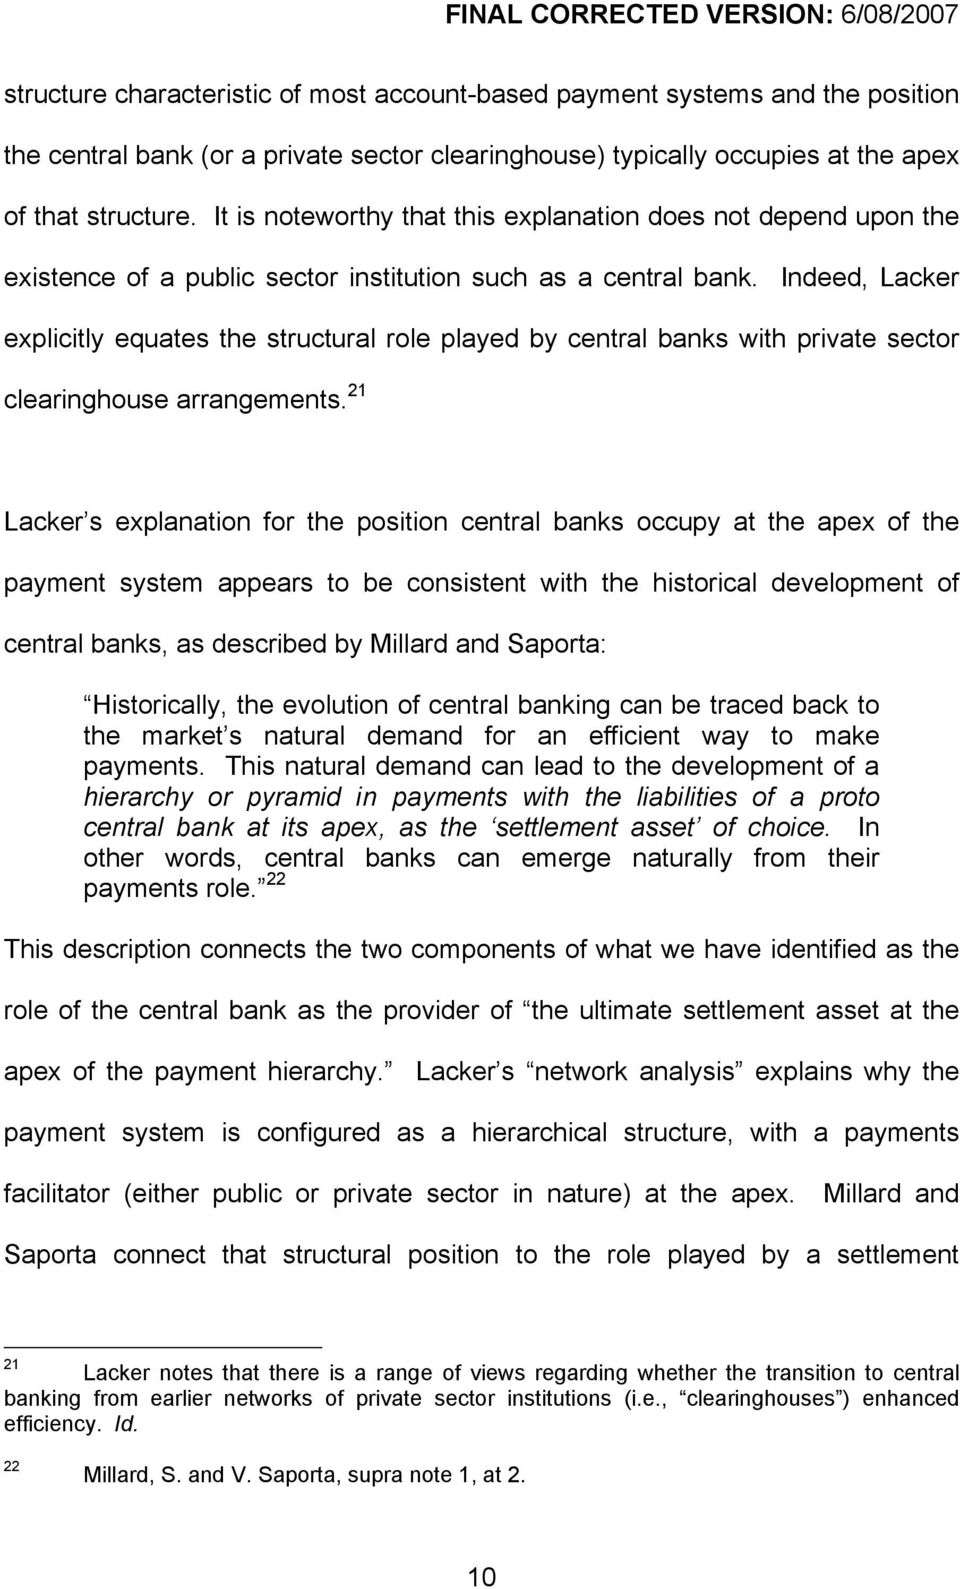 Indeed, Lacker explicitly equates the structural role played by central banks with private sector clearinghouse arrangements.